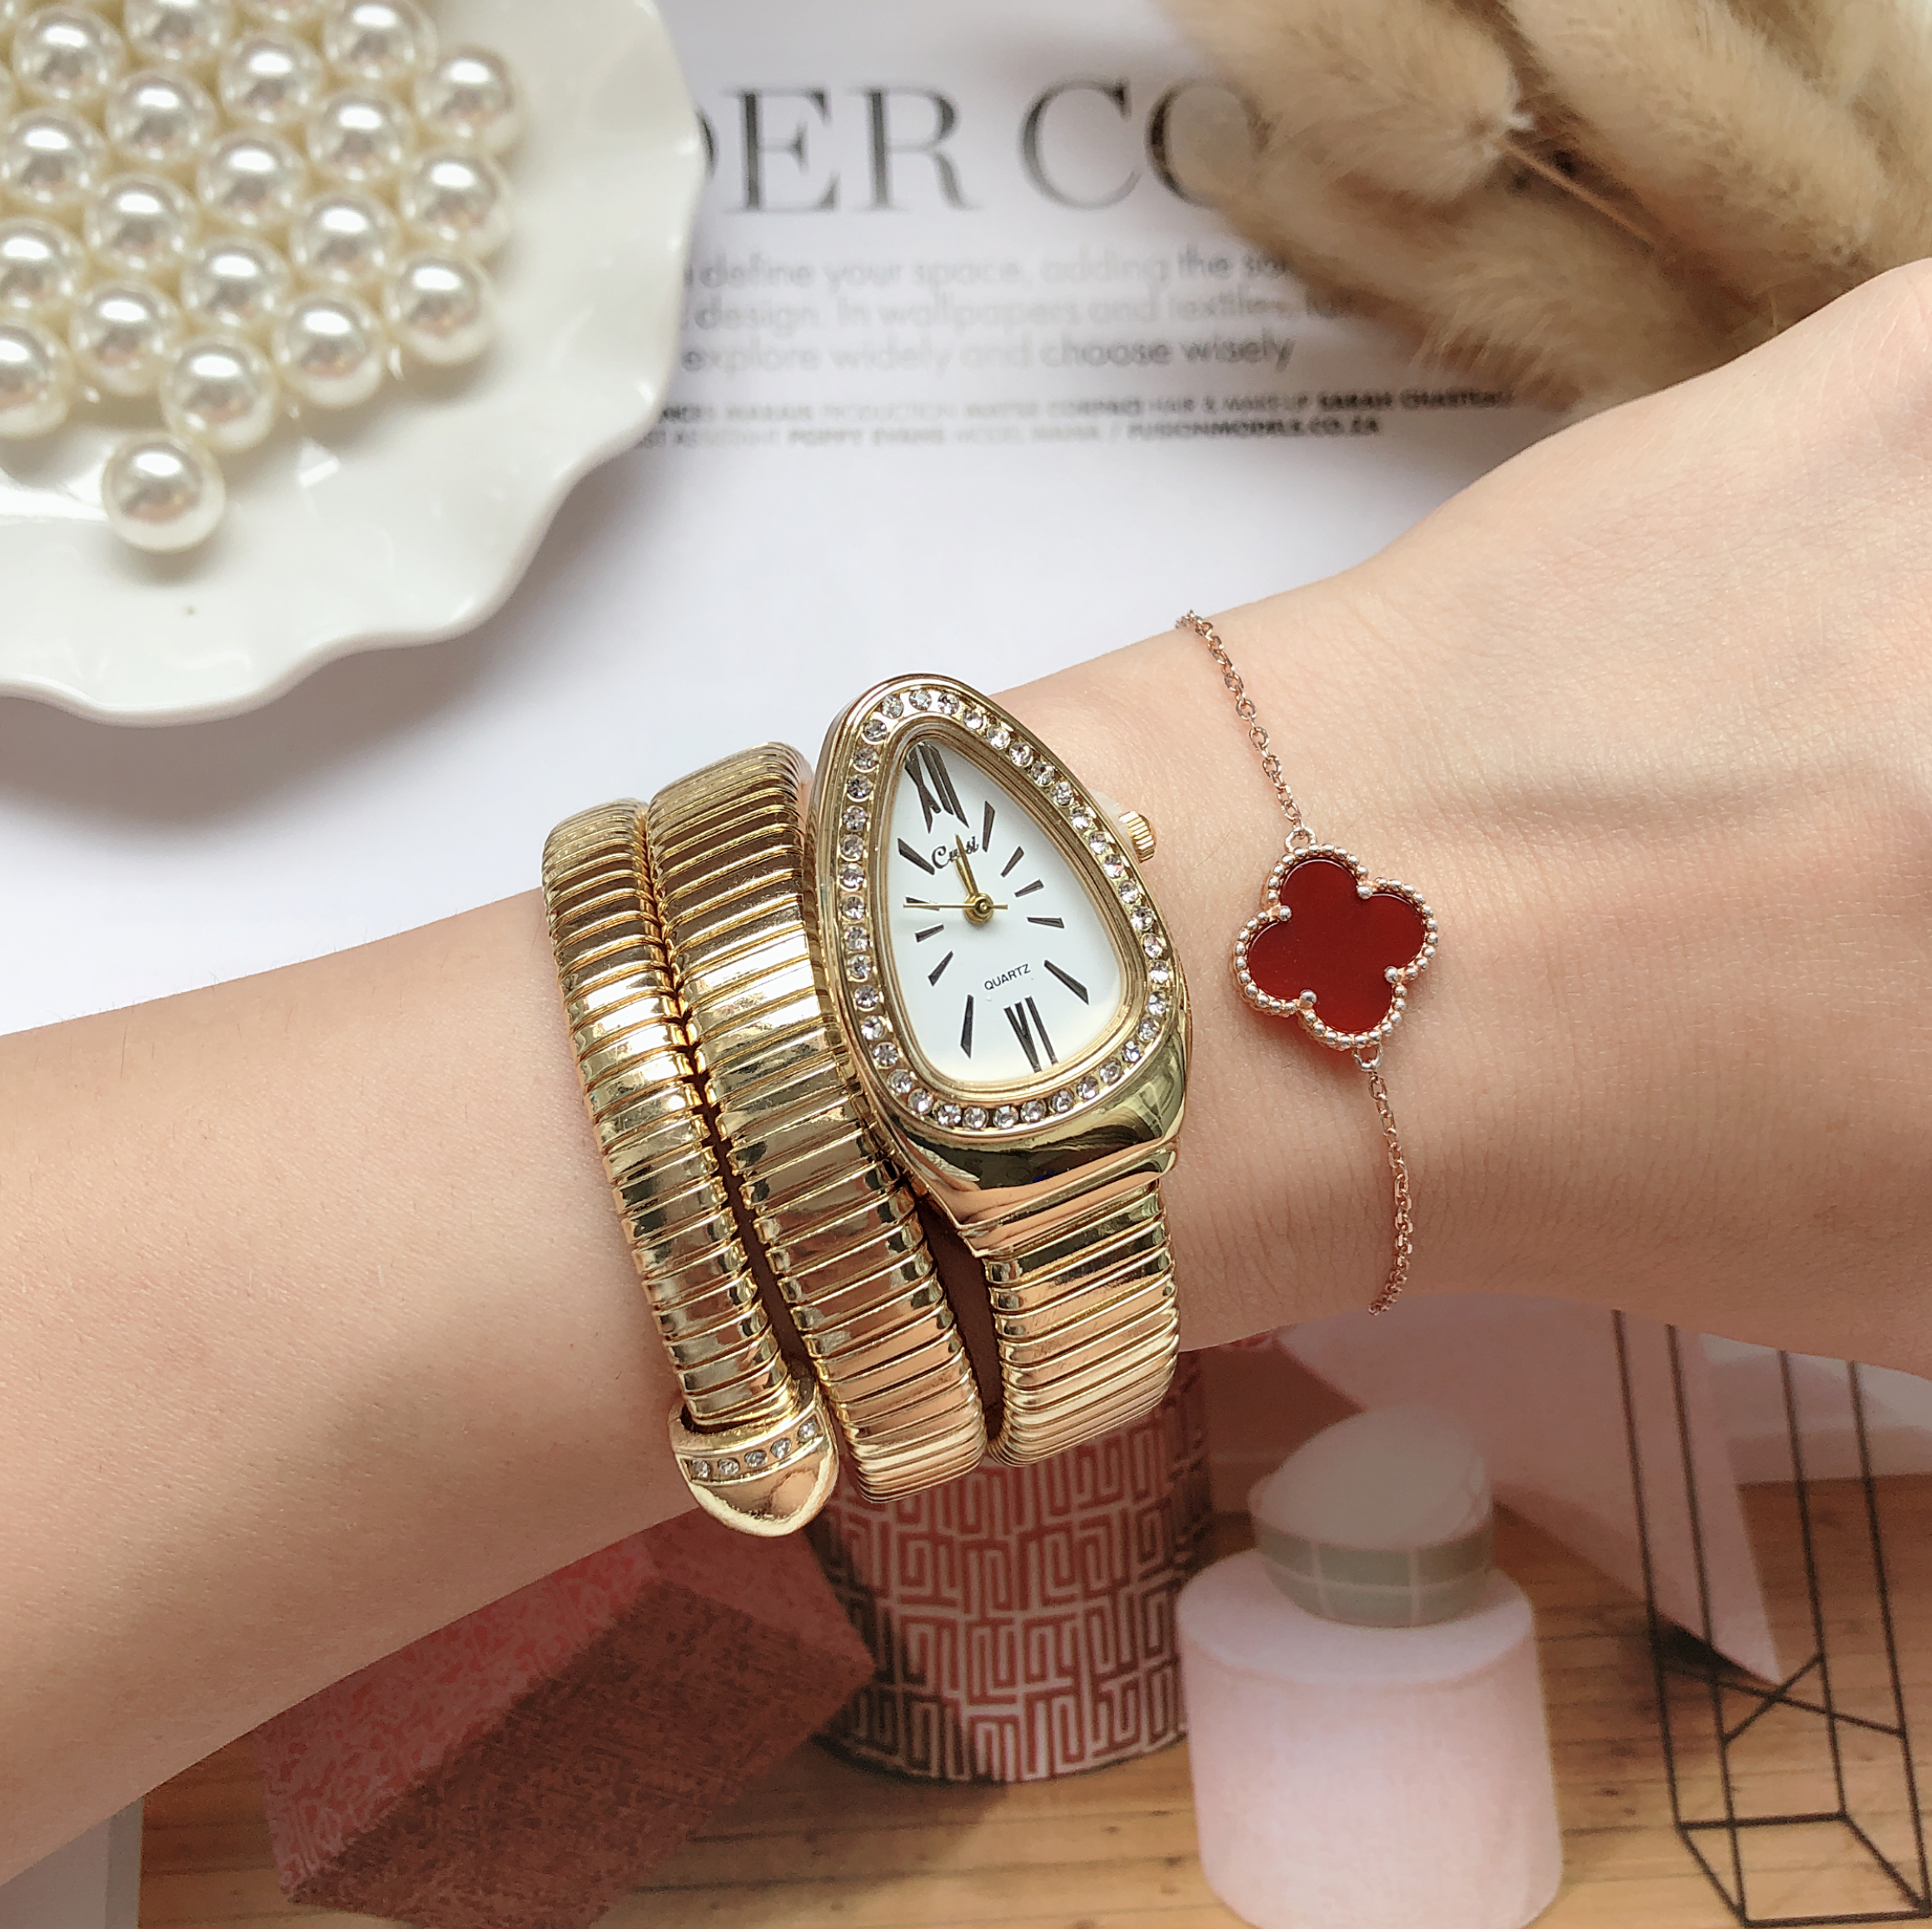 New Women Luxury Brand Watch Snake Quartz Ladies Gold Watch Diamond Wristwatch Female Fashion Bracelet Watches Clock Reloj Mujer